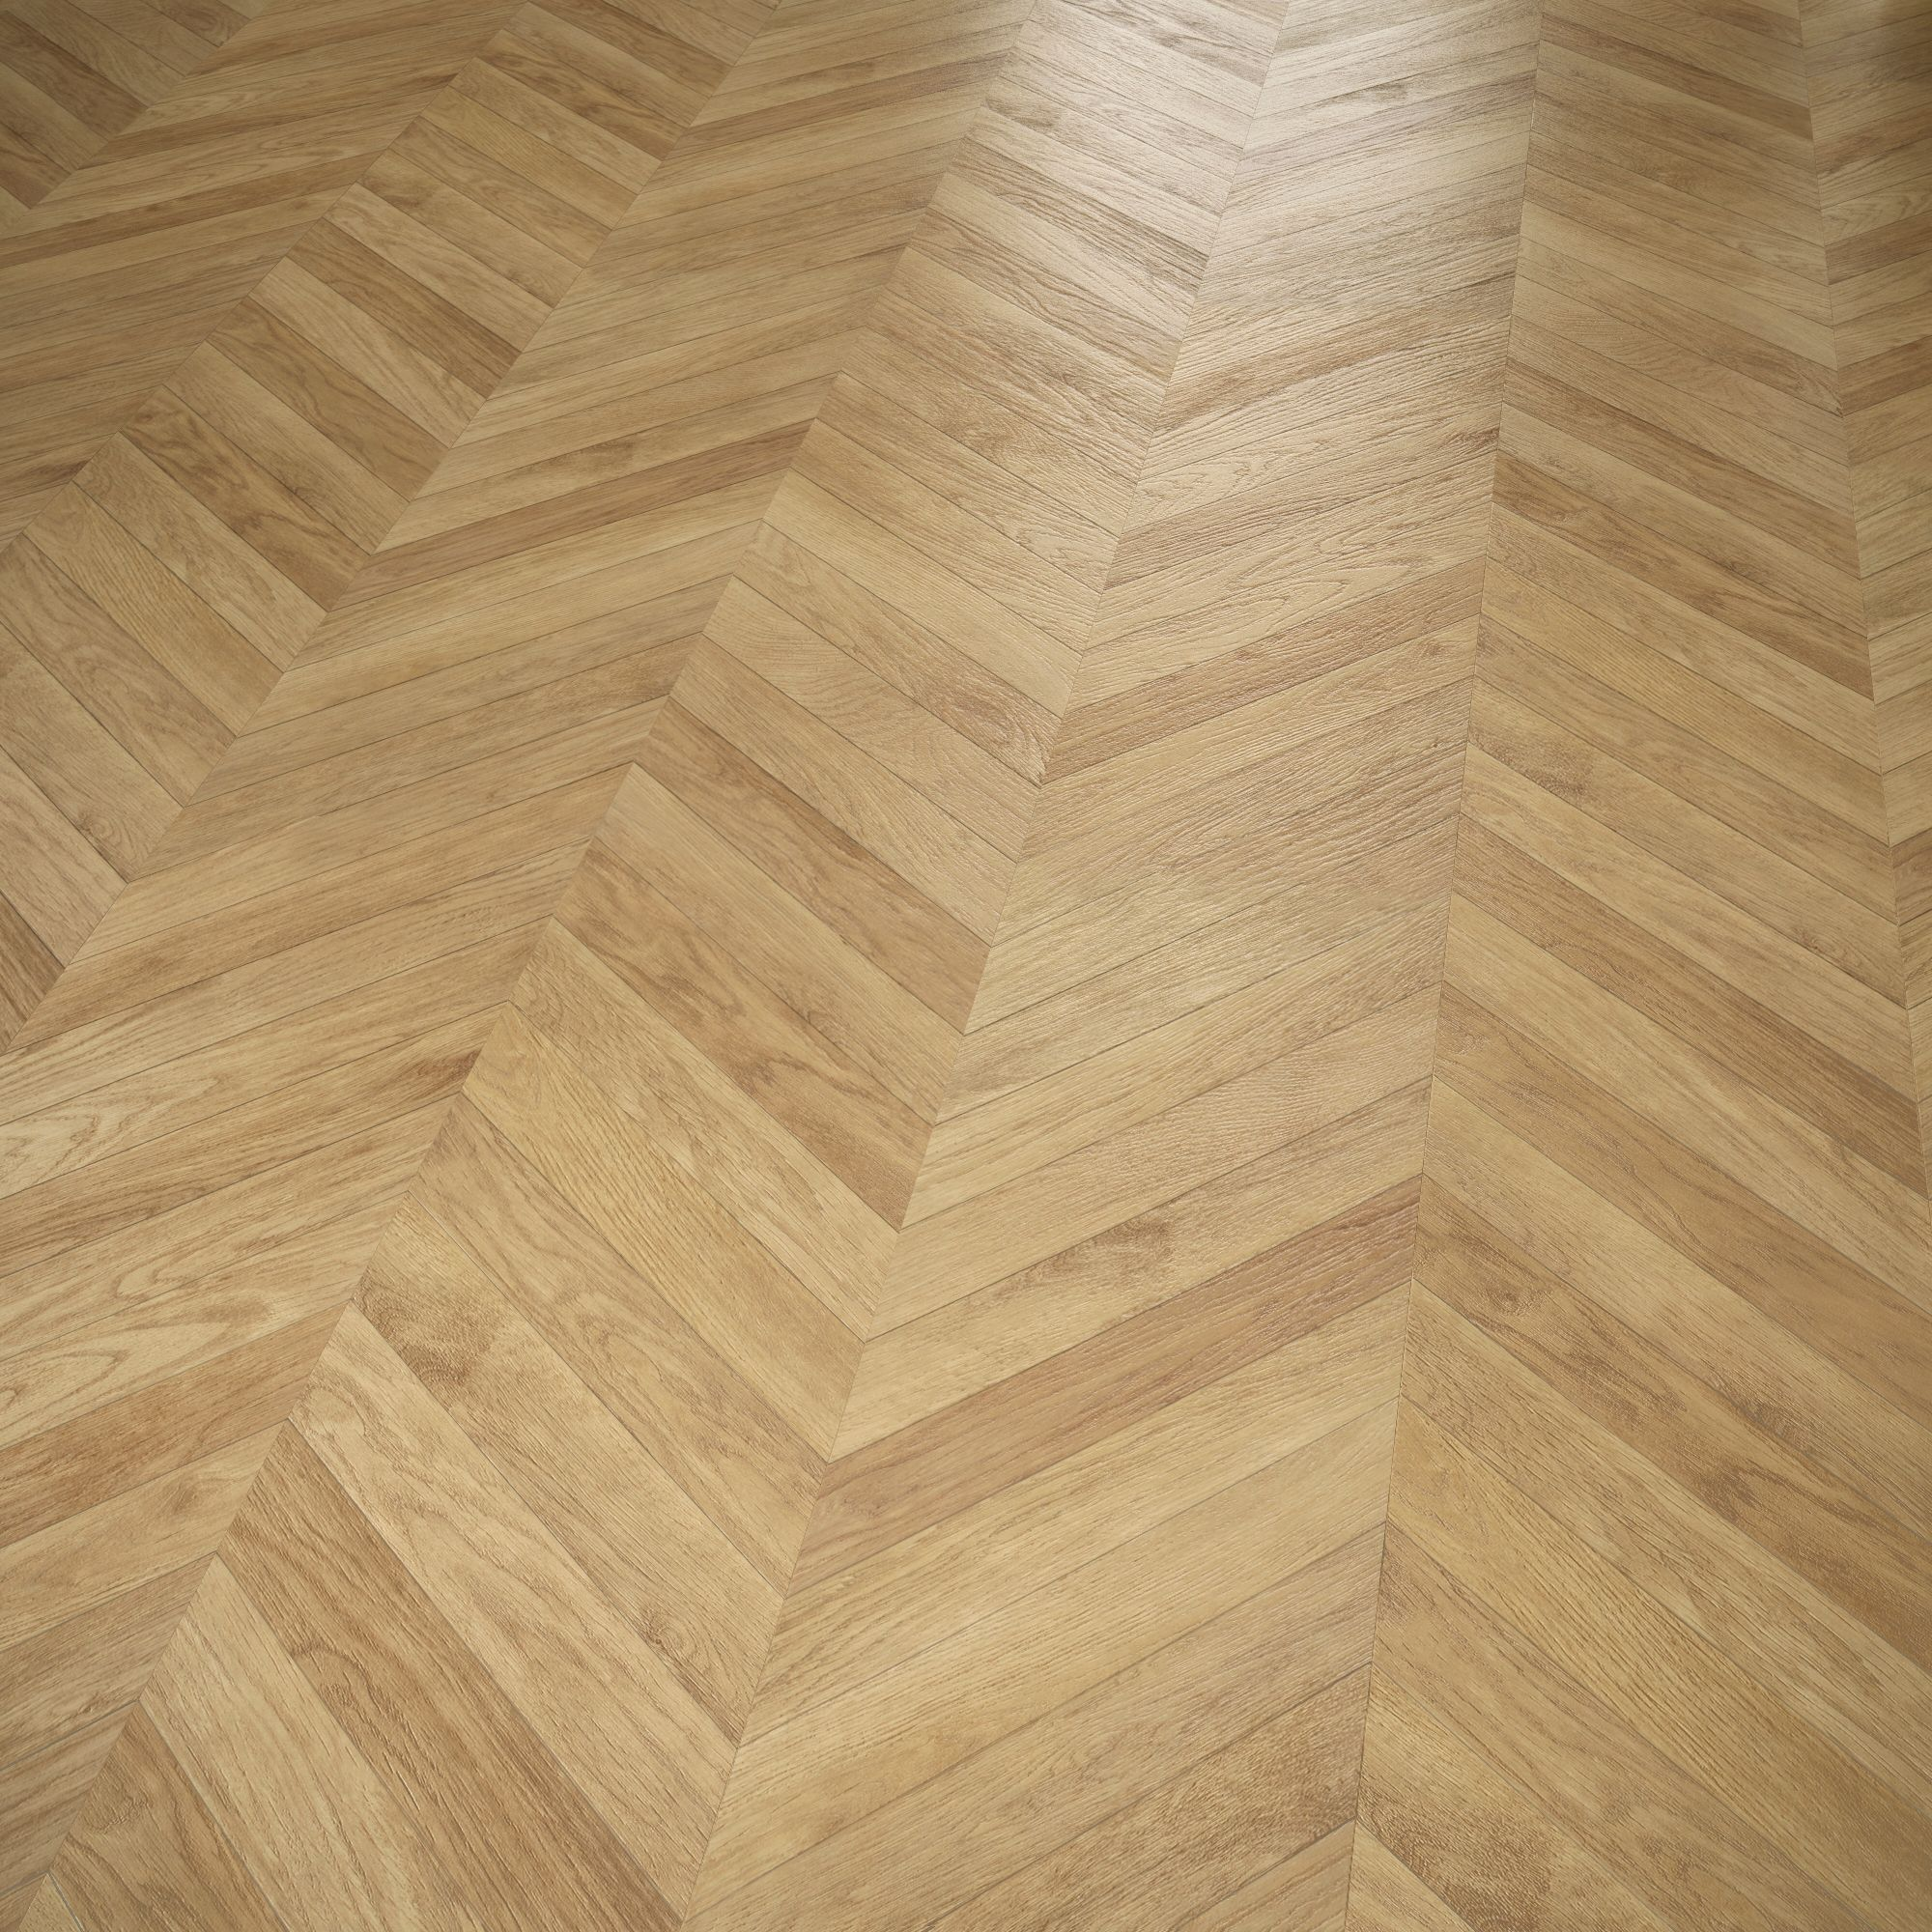 Alessano Herringbone Oak Effect Laminate Flooring 1.39 m²